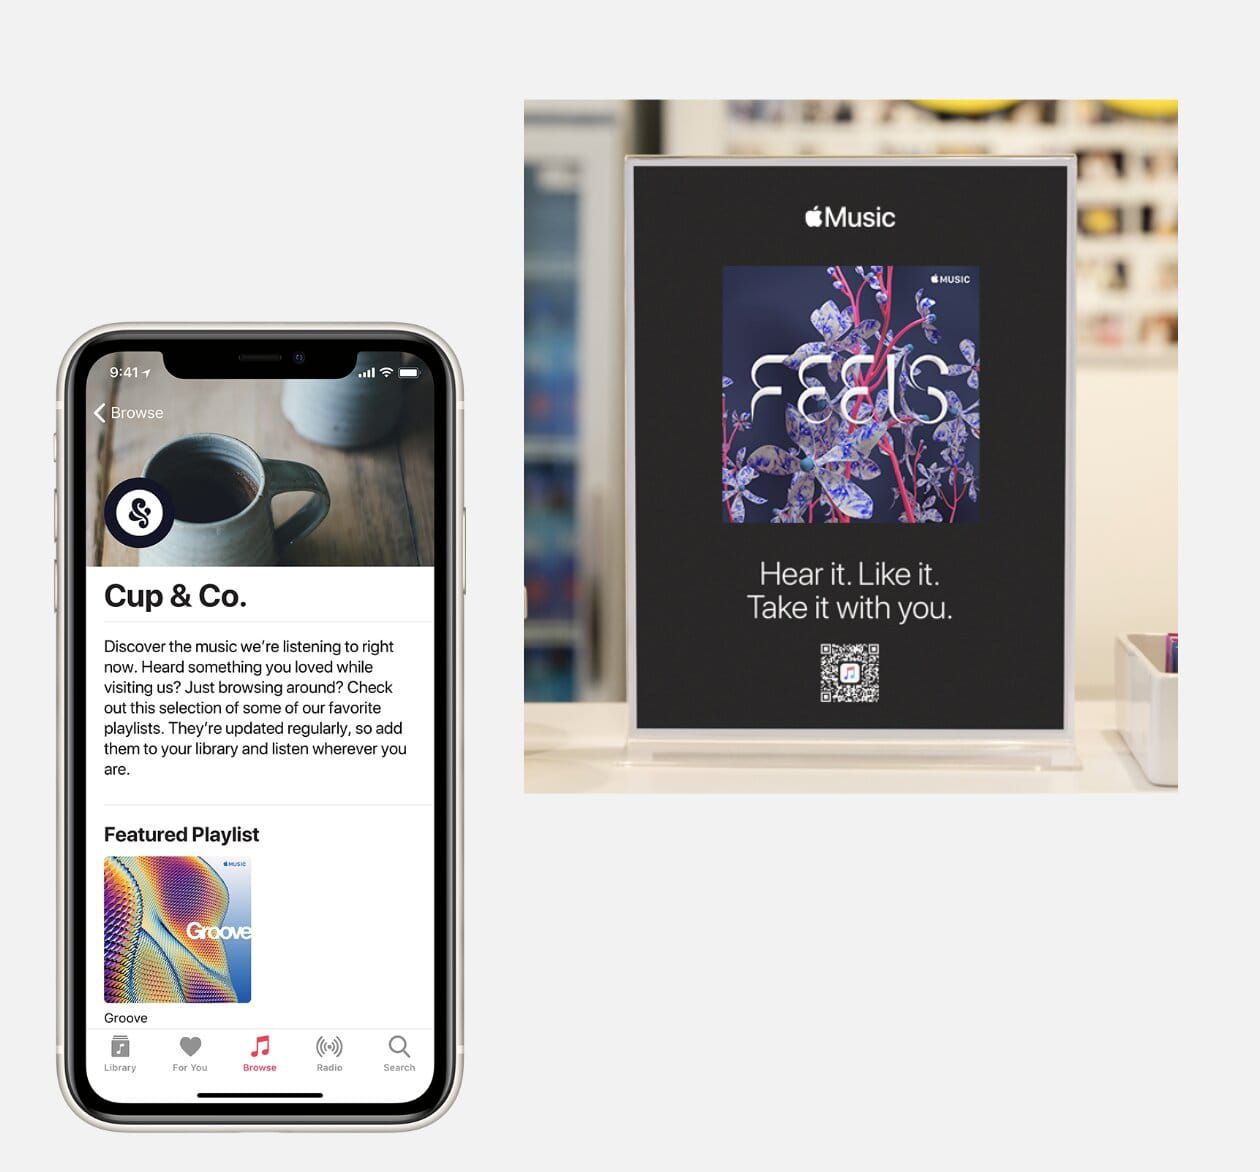 Présentation des playlists de marque sur Apple Music for Business